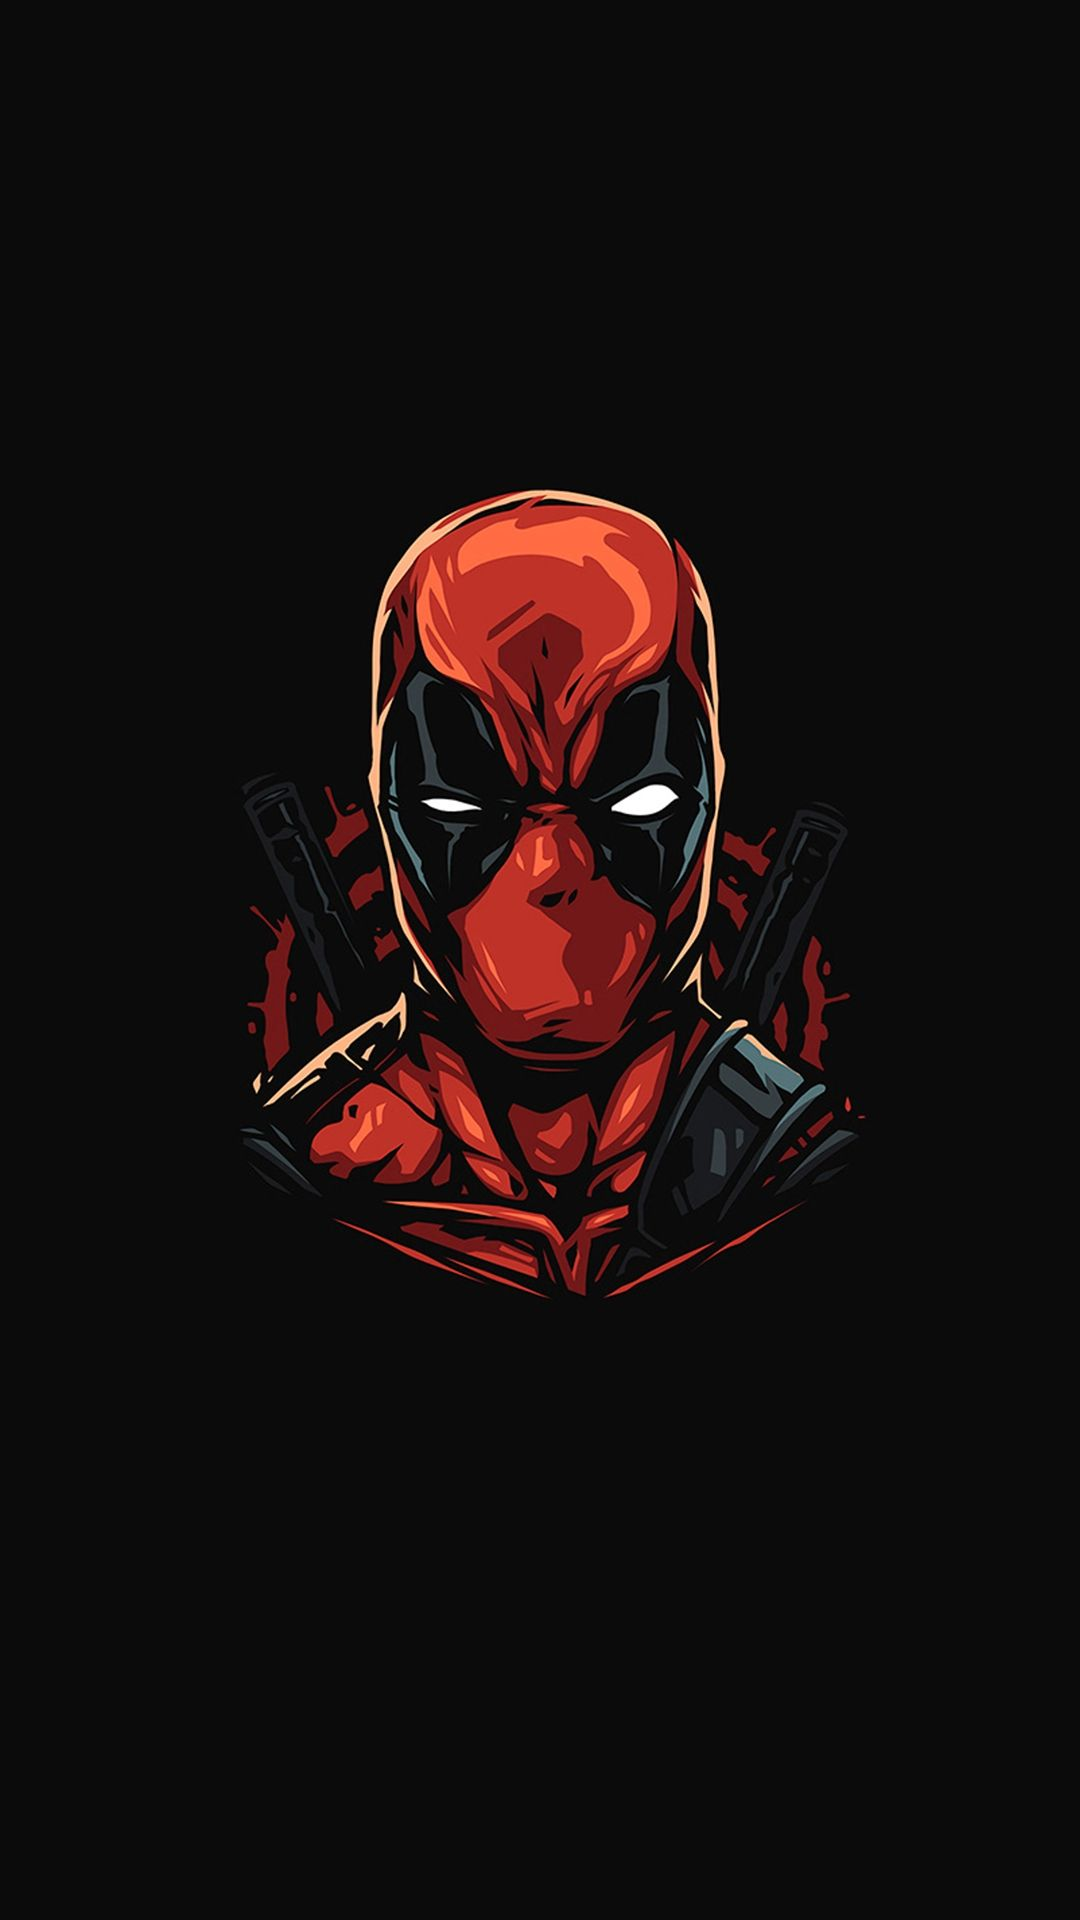 Deadpool Angry Face Wallpaper In 2020 Marvel Comics Wallpaper Deadpool Wallpaper Deadpool Wallpaper Iphone